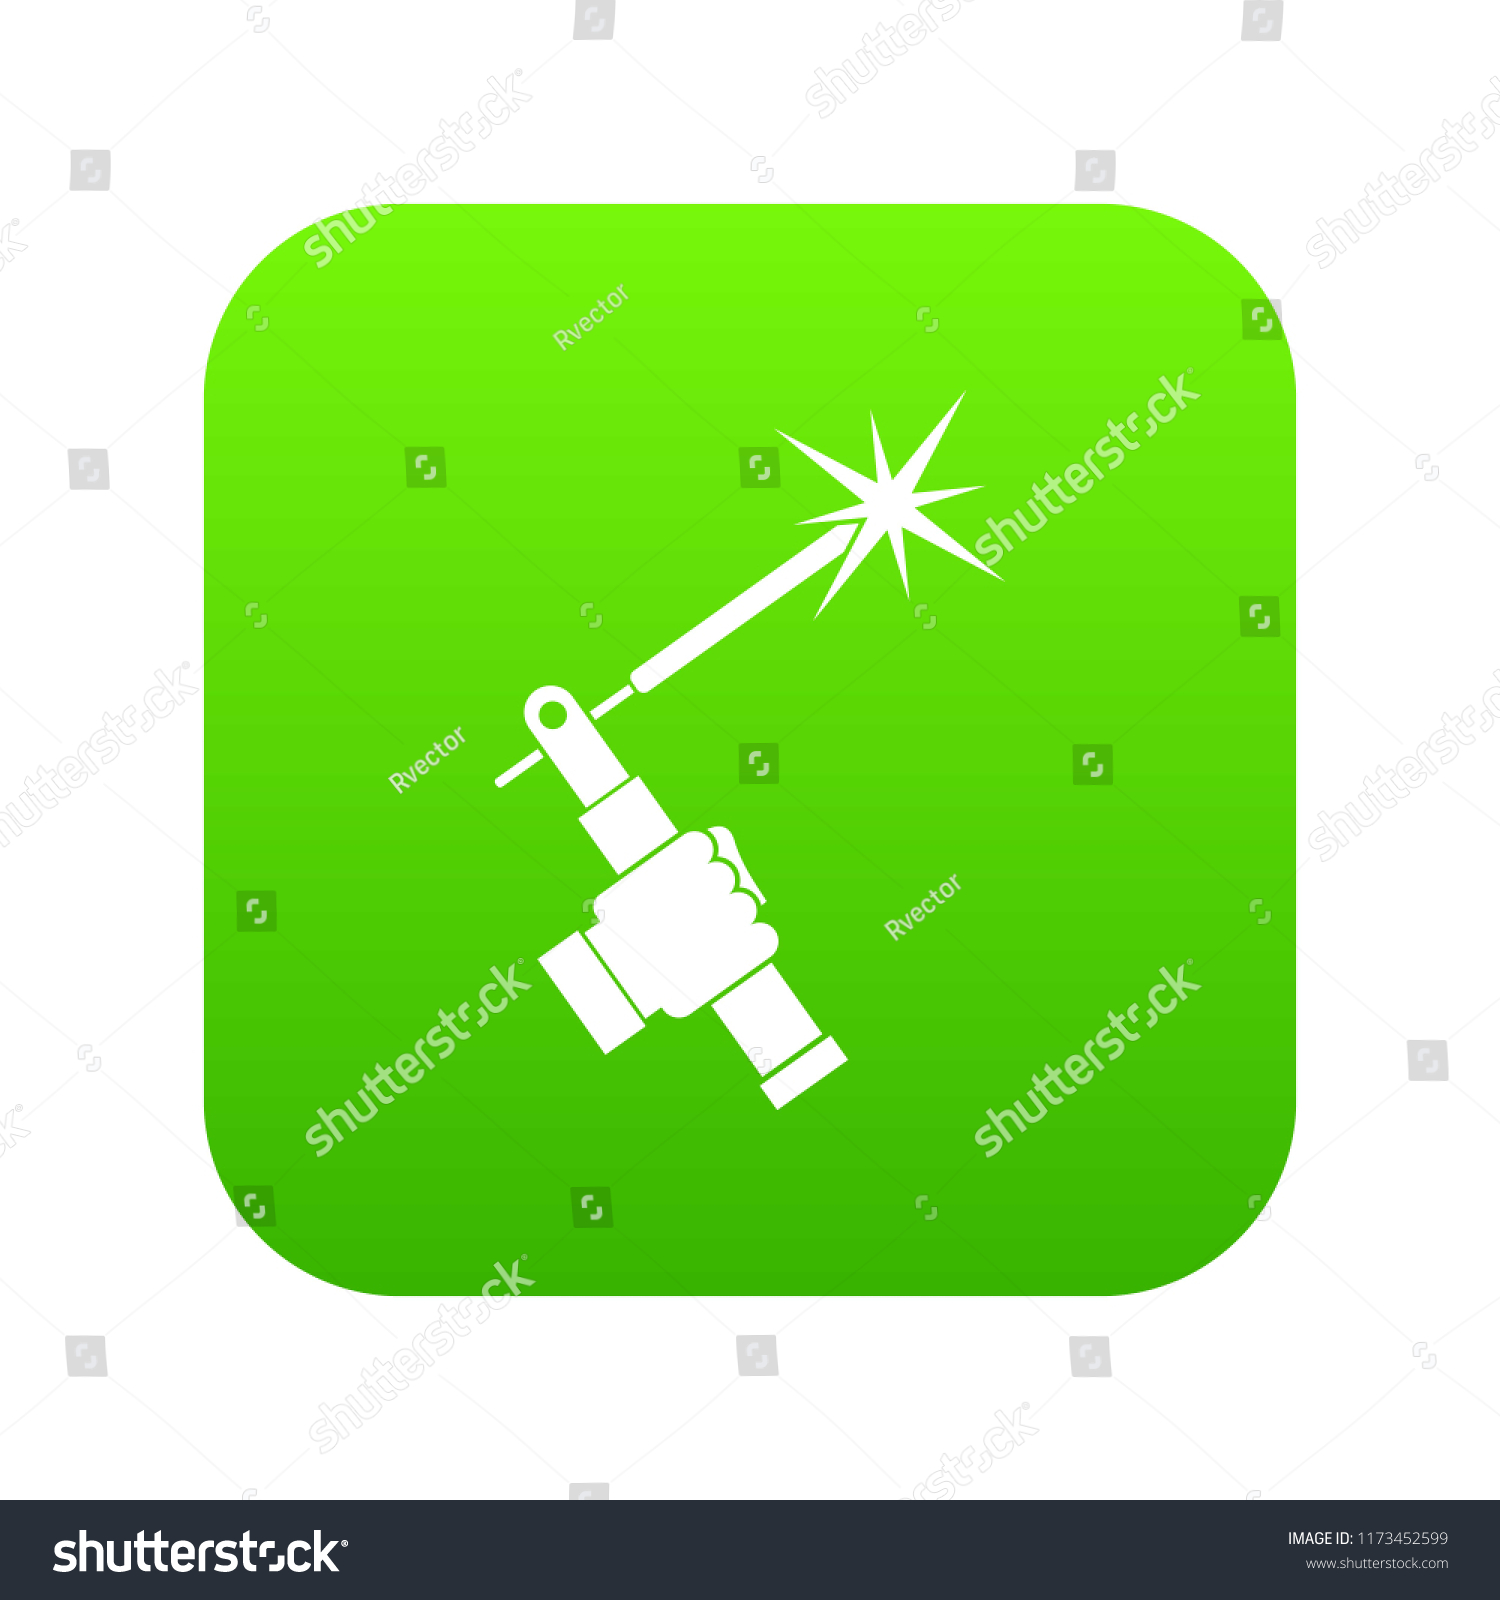 Mig Welding Torch Hand Icon Digital Stock Illustration 1173452599 Diagram In Green For Any Design Isolated On White